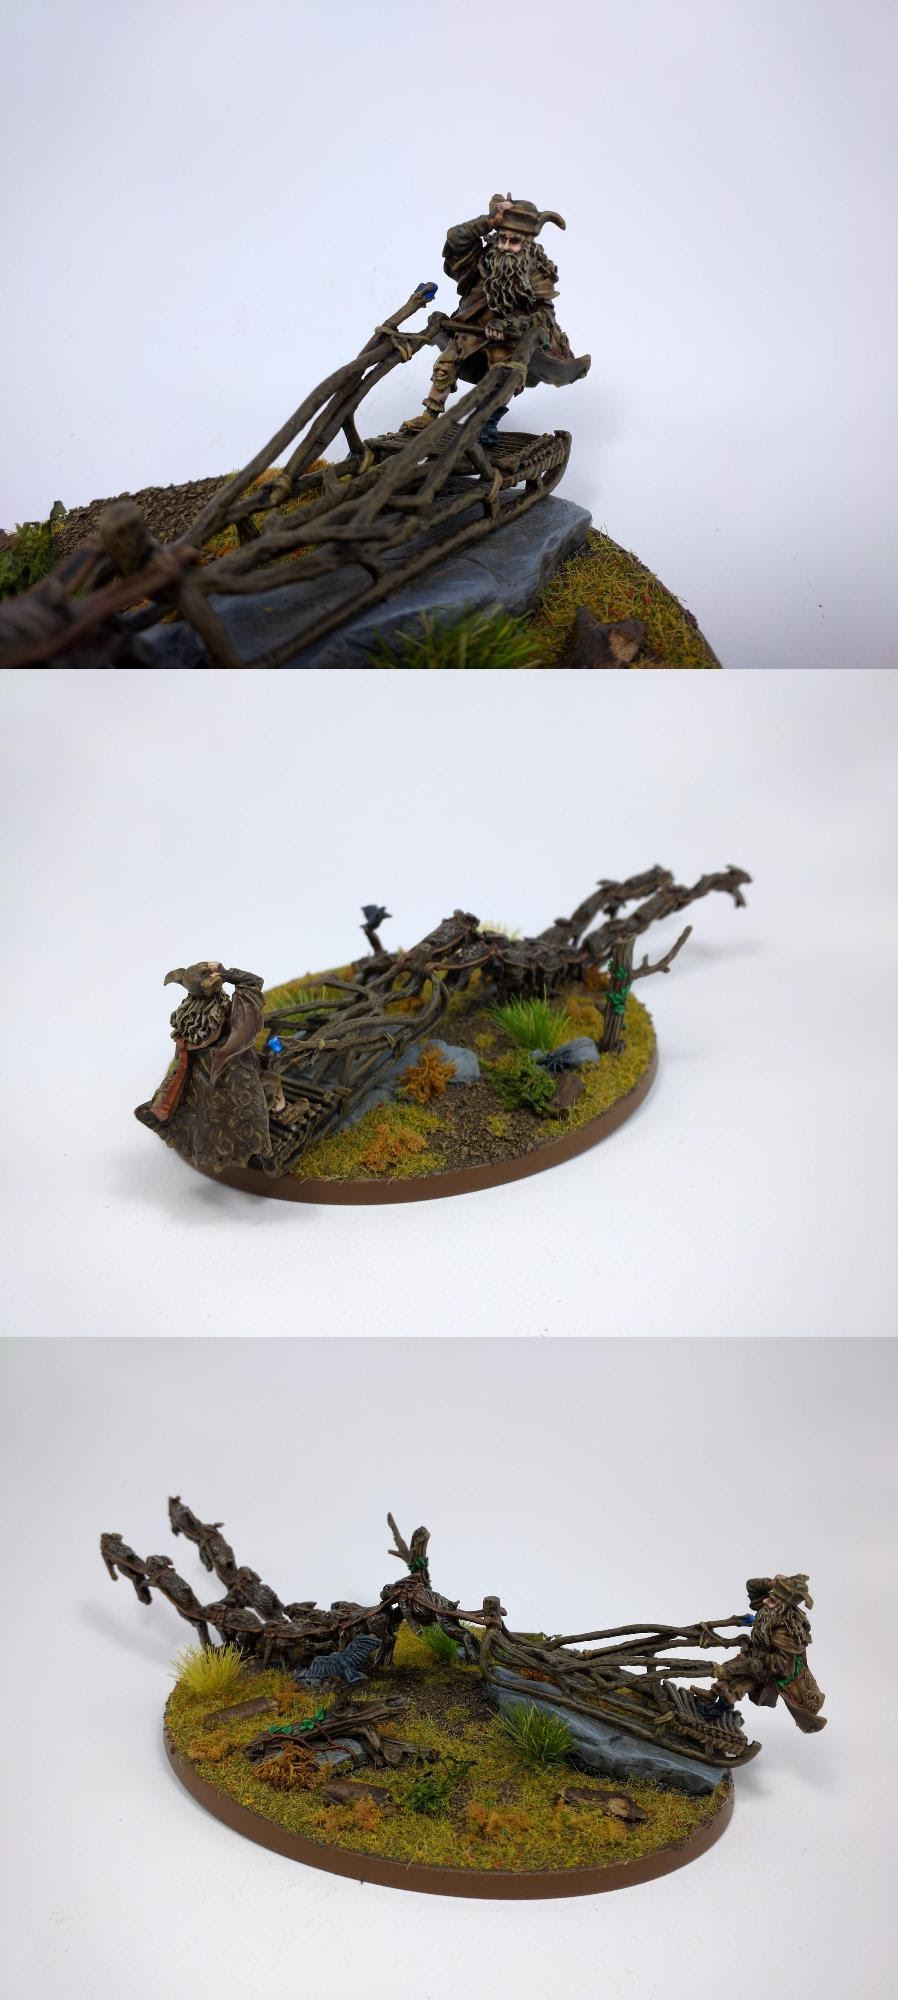 Radagast the Brown on Sleigh